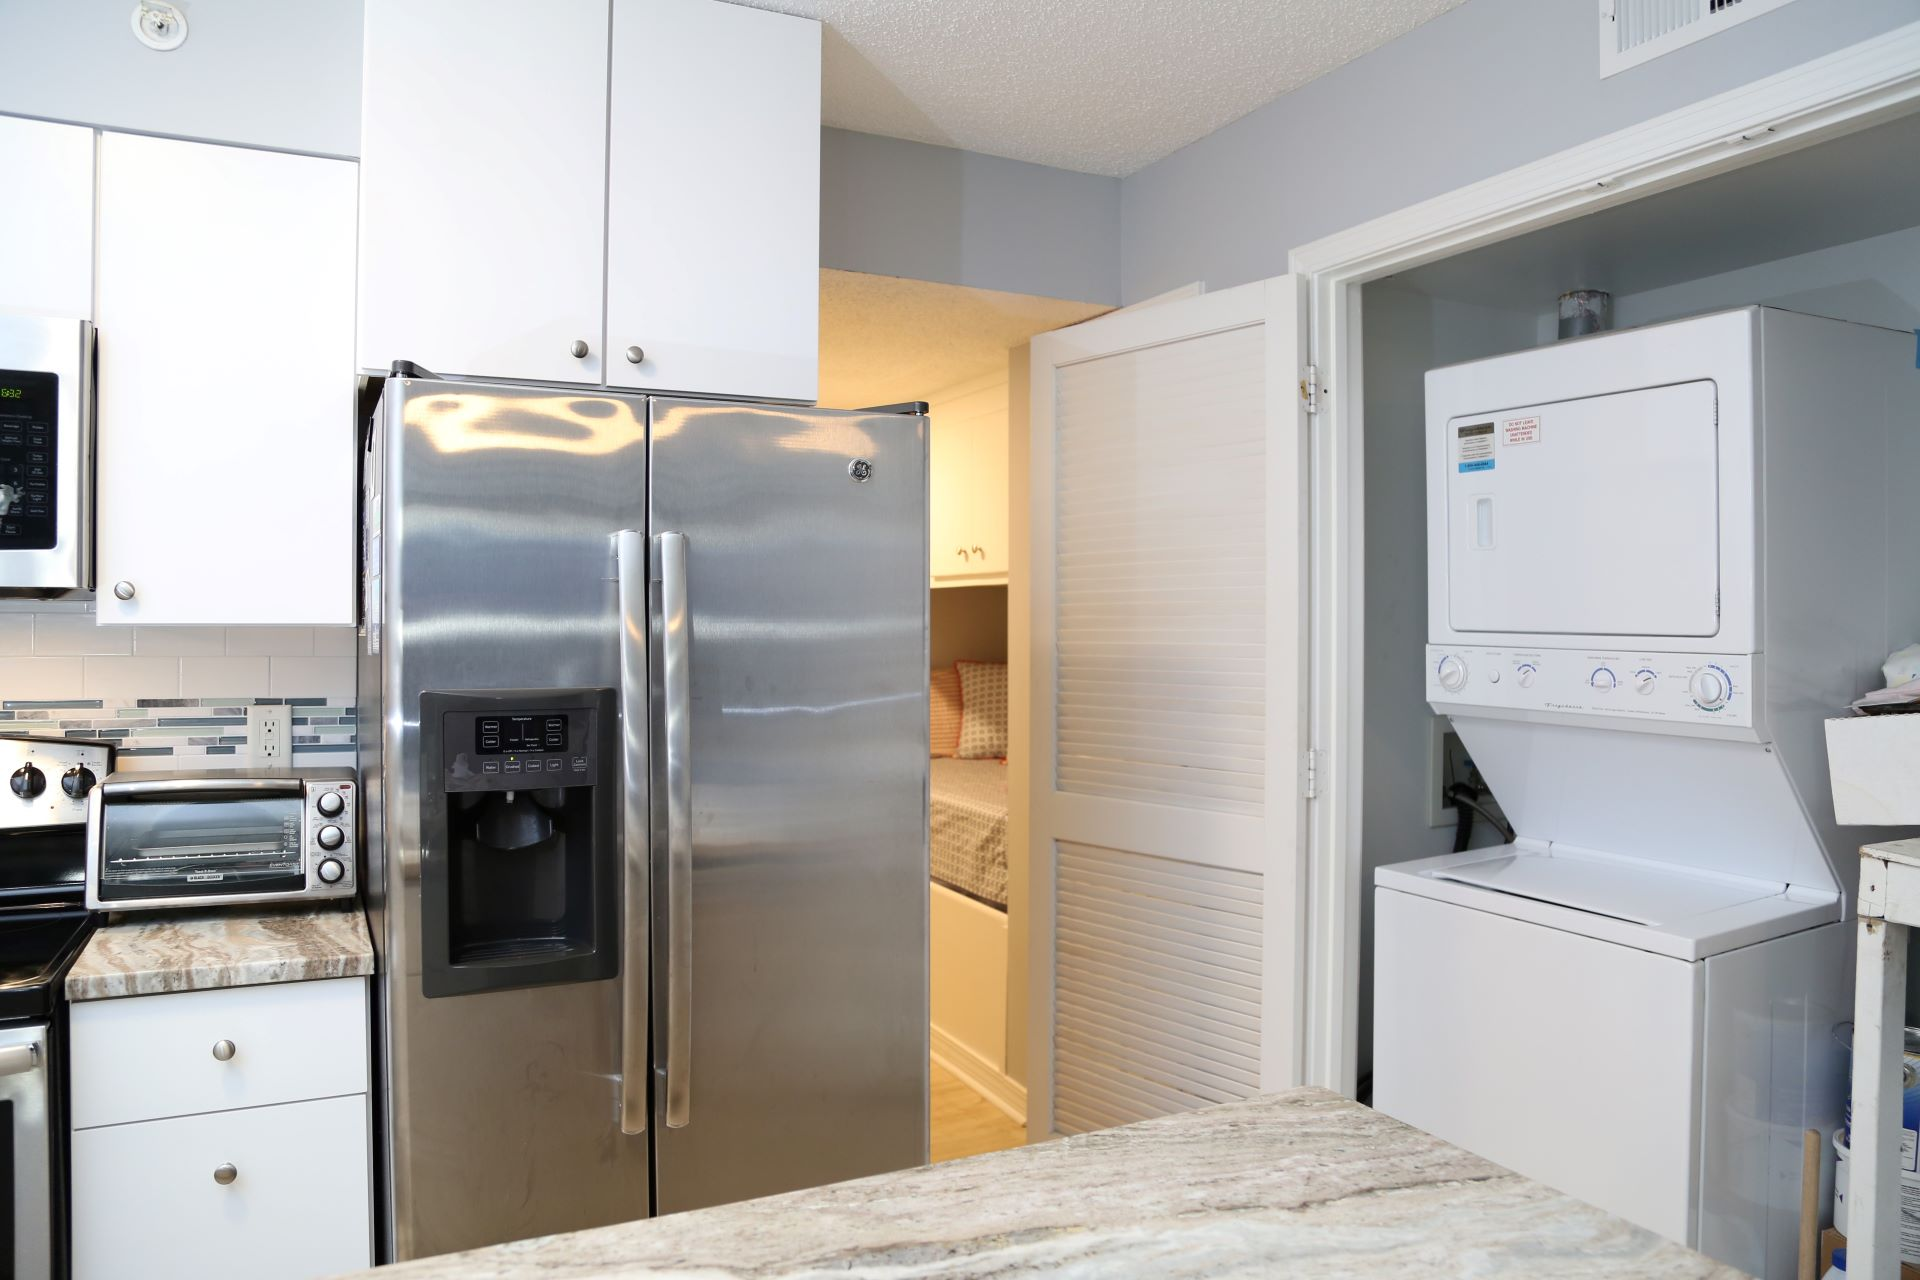 The washer/dryer is a great convenience for keeping up with